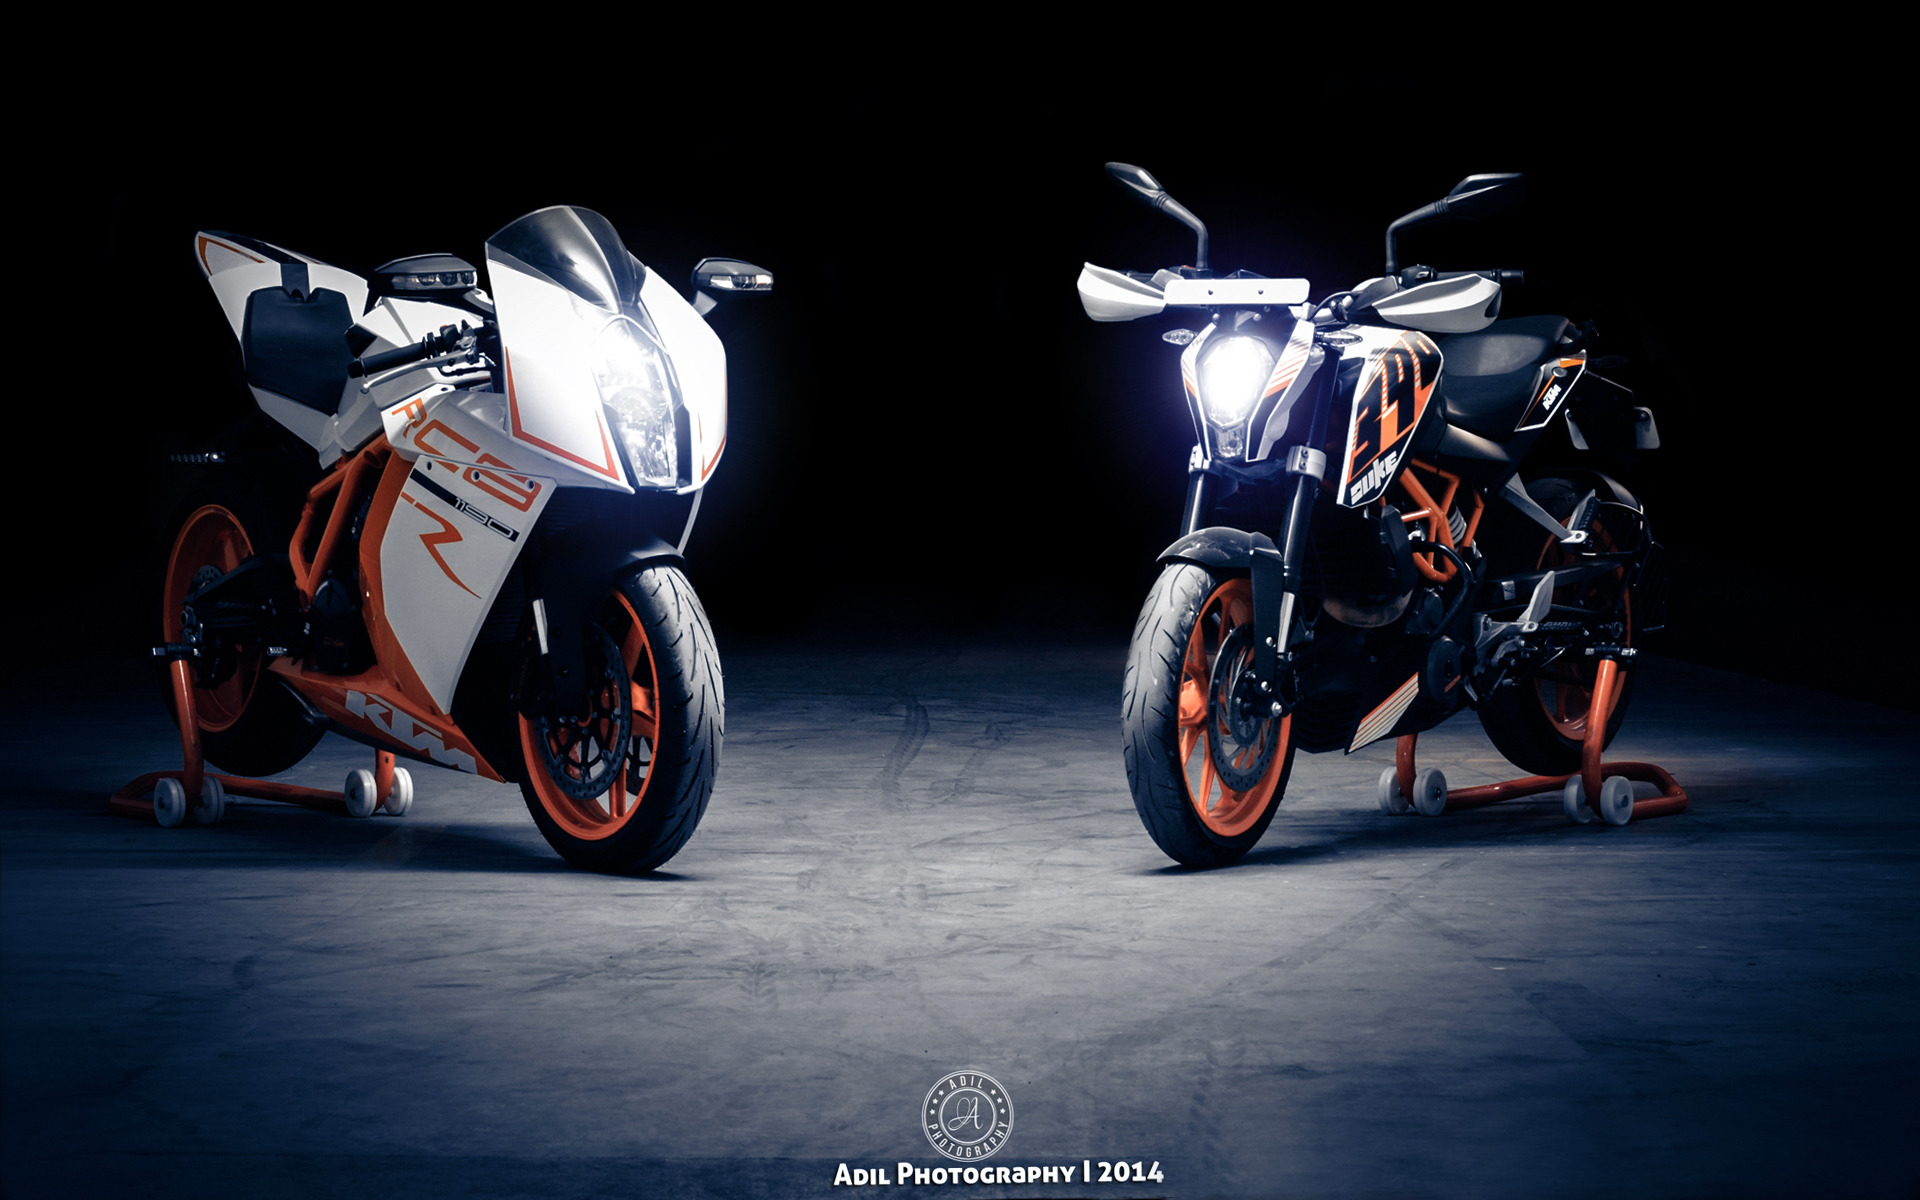 Ktm motorcycles hd wallpapers free wallaper downloads ktm sport - Ktm Motorcycles Hd Wallpapers Free Wallaper Downloads Ktm Sport 58